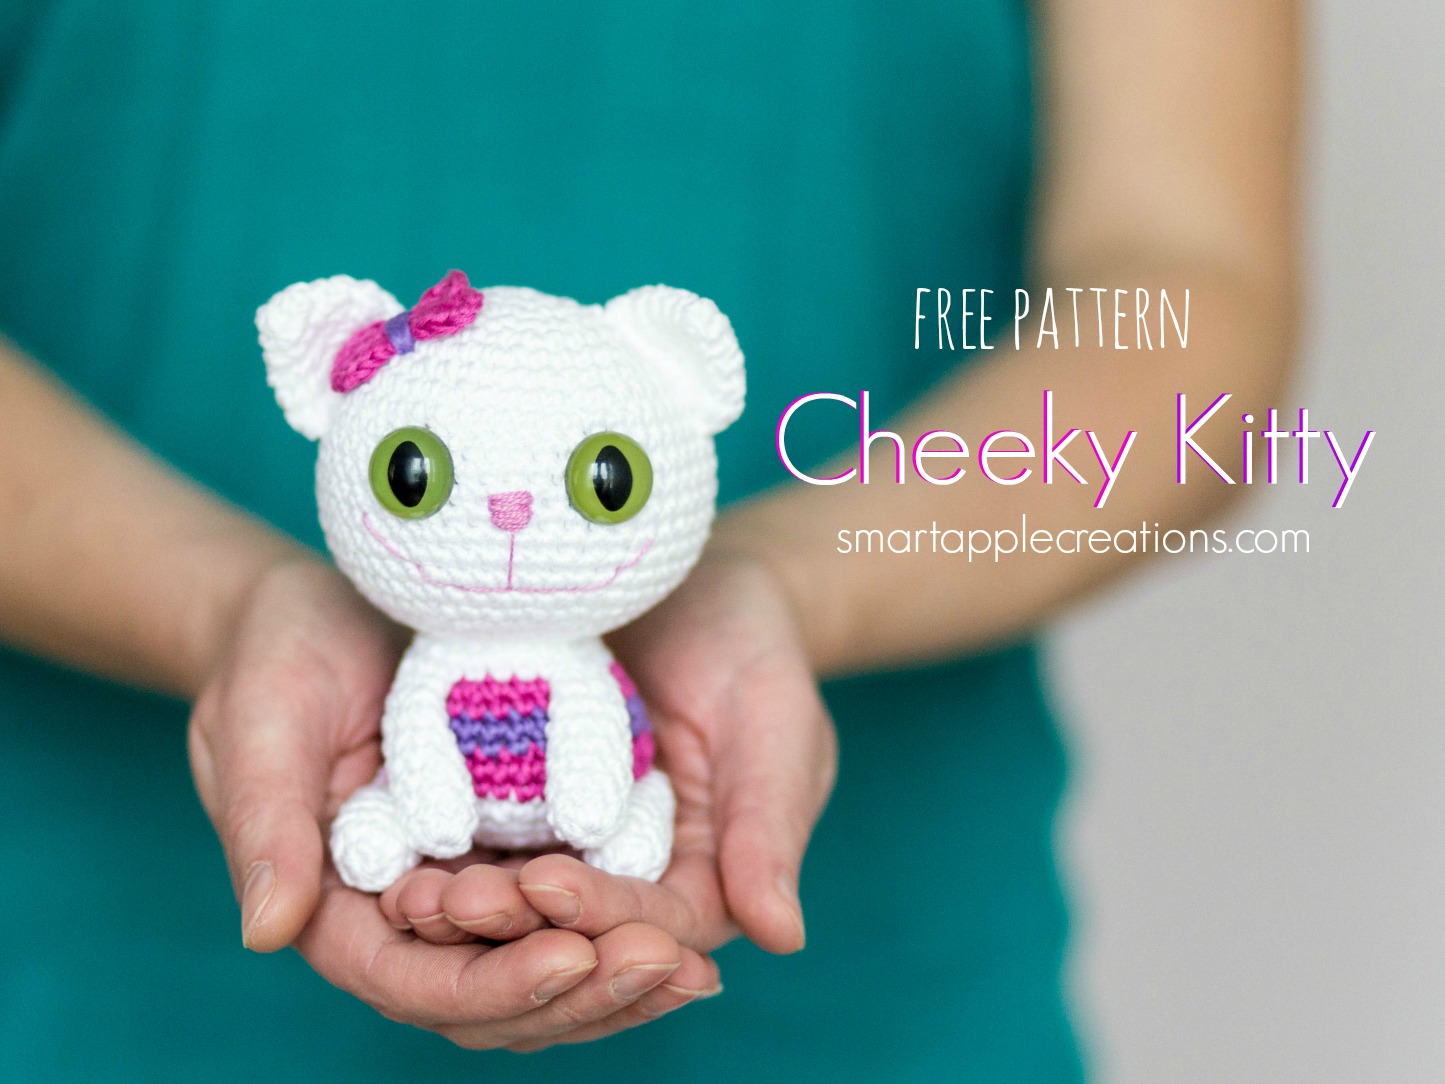 Free Little Kitty Cat Amigurumi Crochet Pattern And Tutorial : Smartapple Creations - amigurumi and crochet